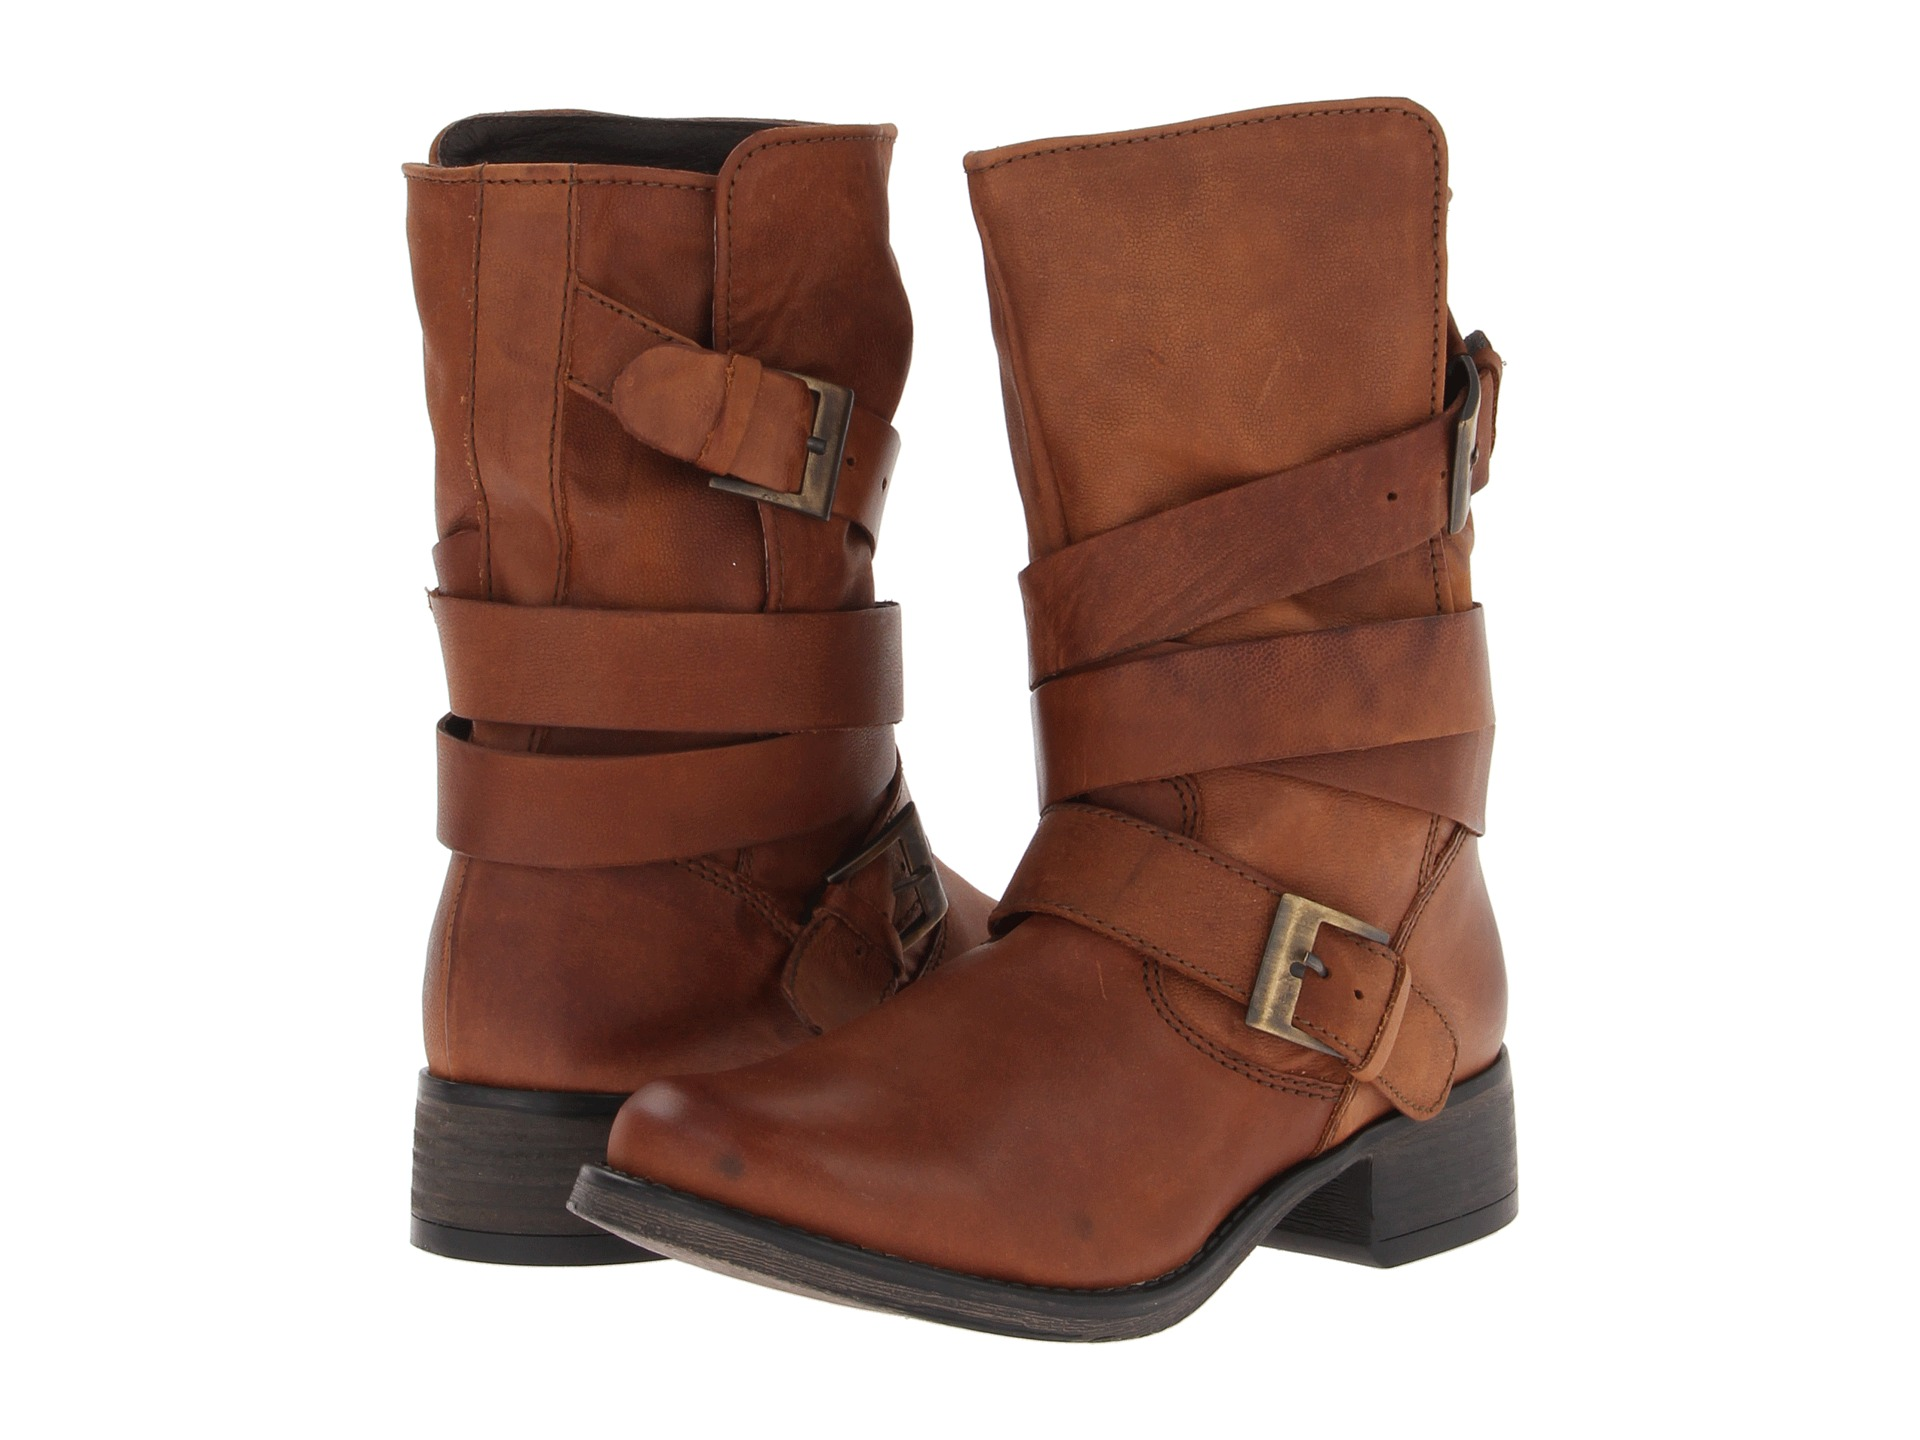 Top 5 Steve Madden Women S Boots 2014 Best List With